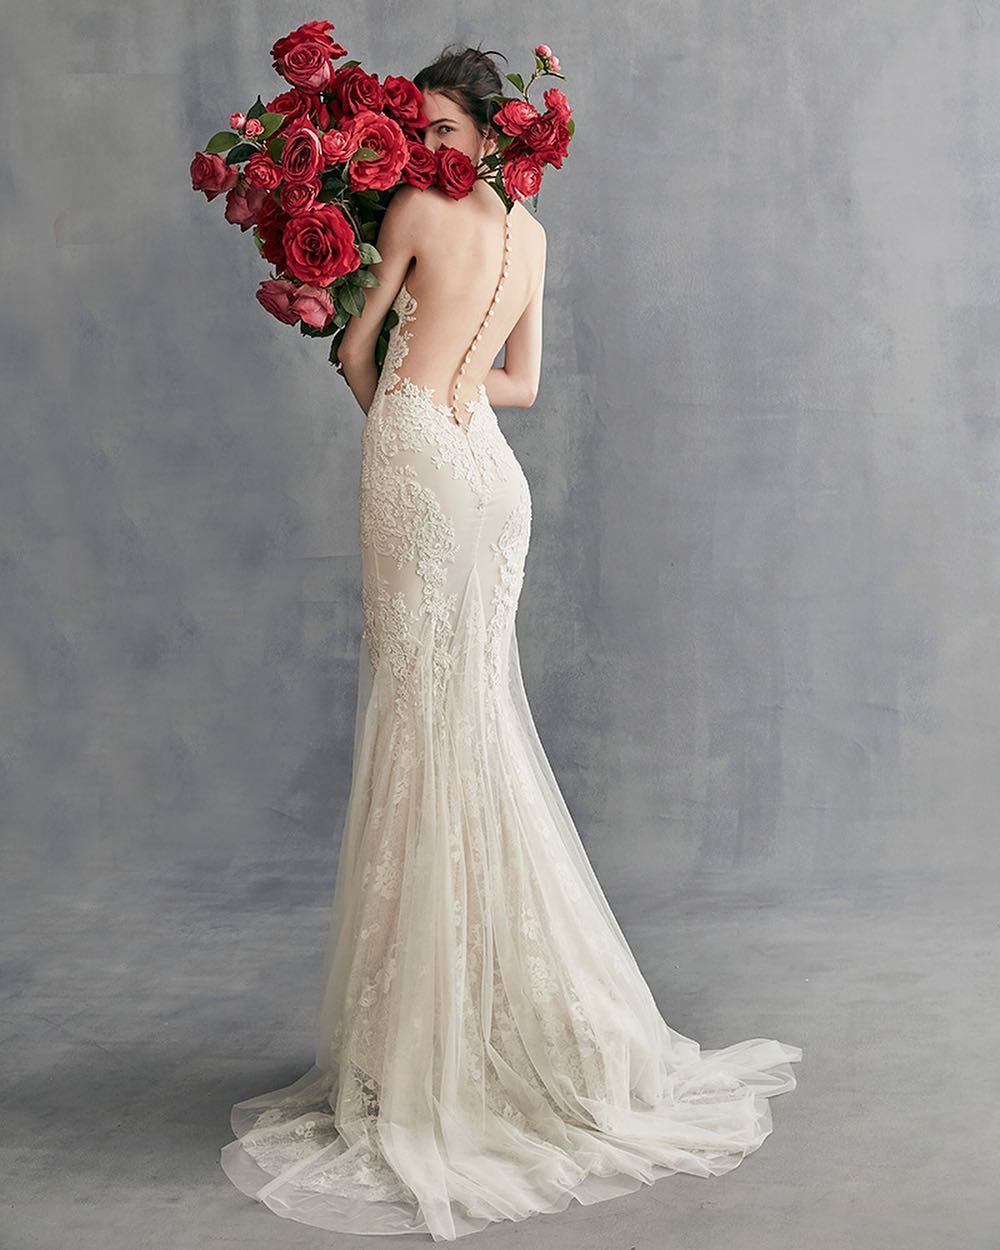 Meet ines inesdisantous new diffusion line on wedluxe today